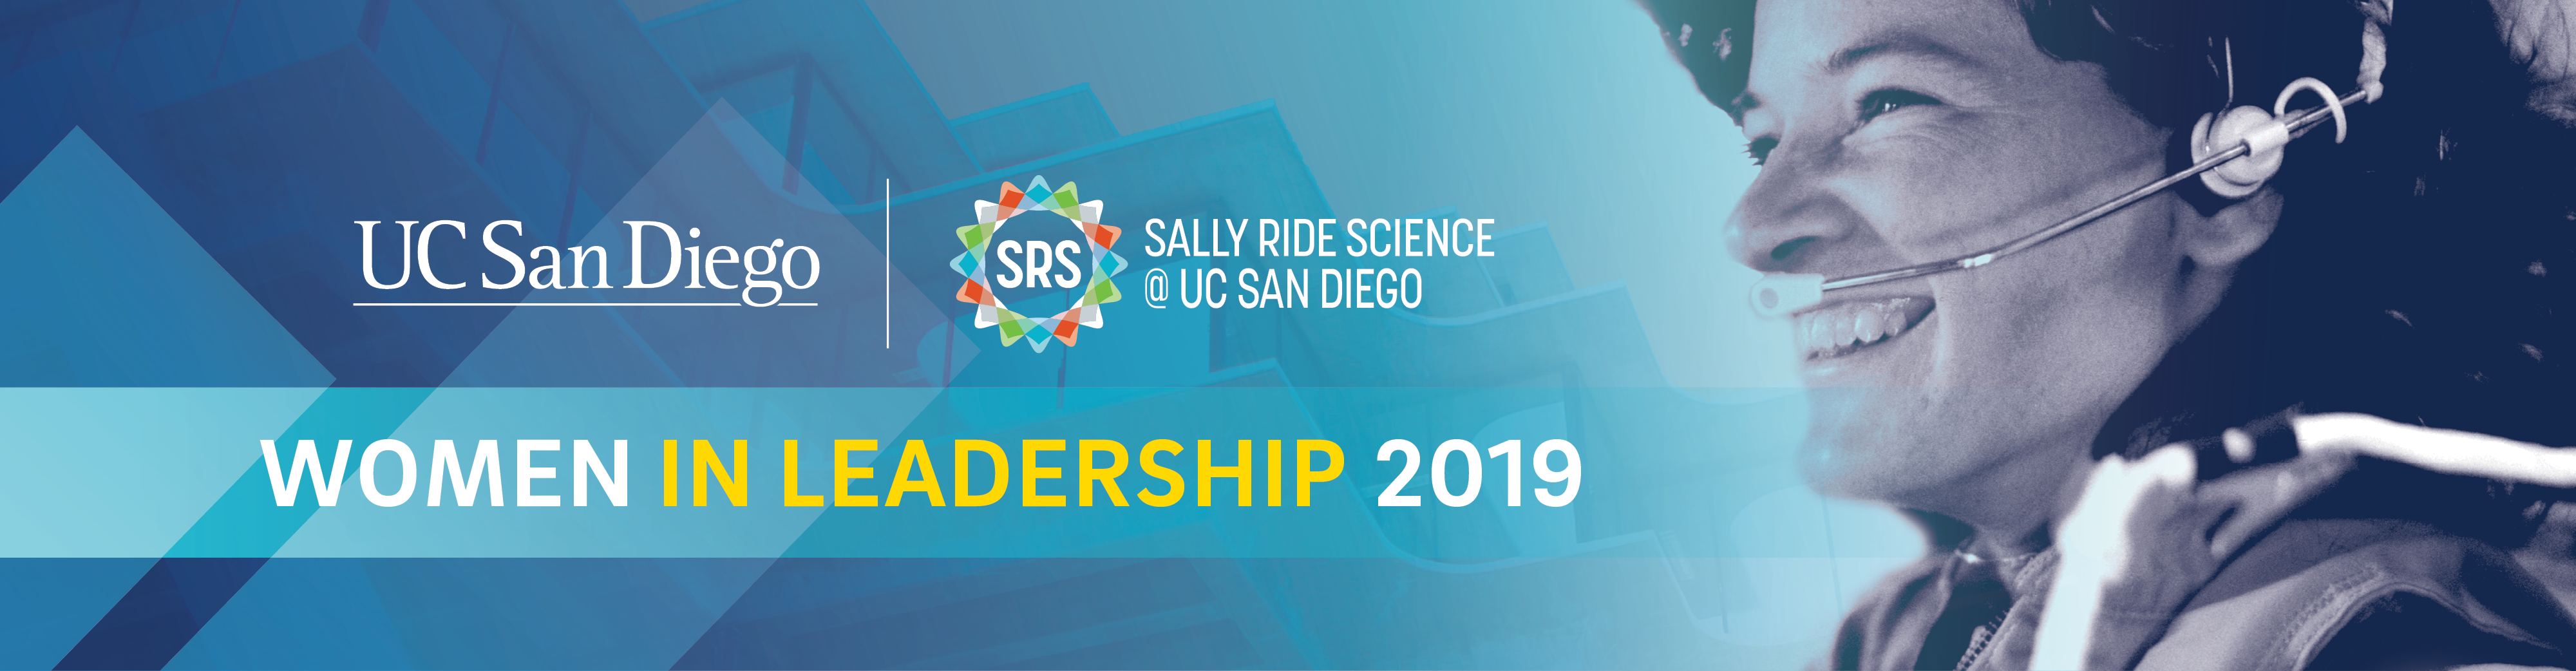 Women in Leadership event by Sally Ride Science at UC San Diego